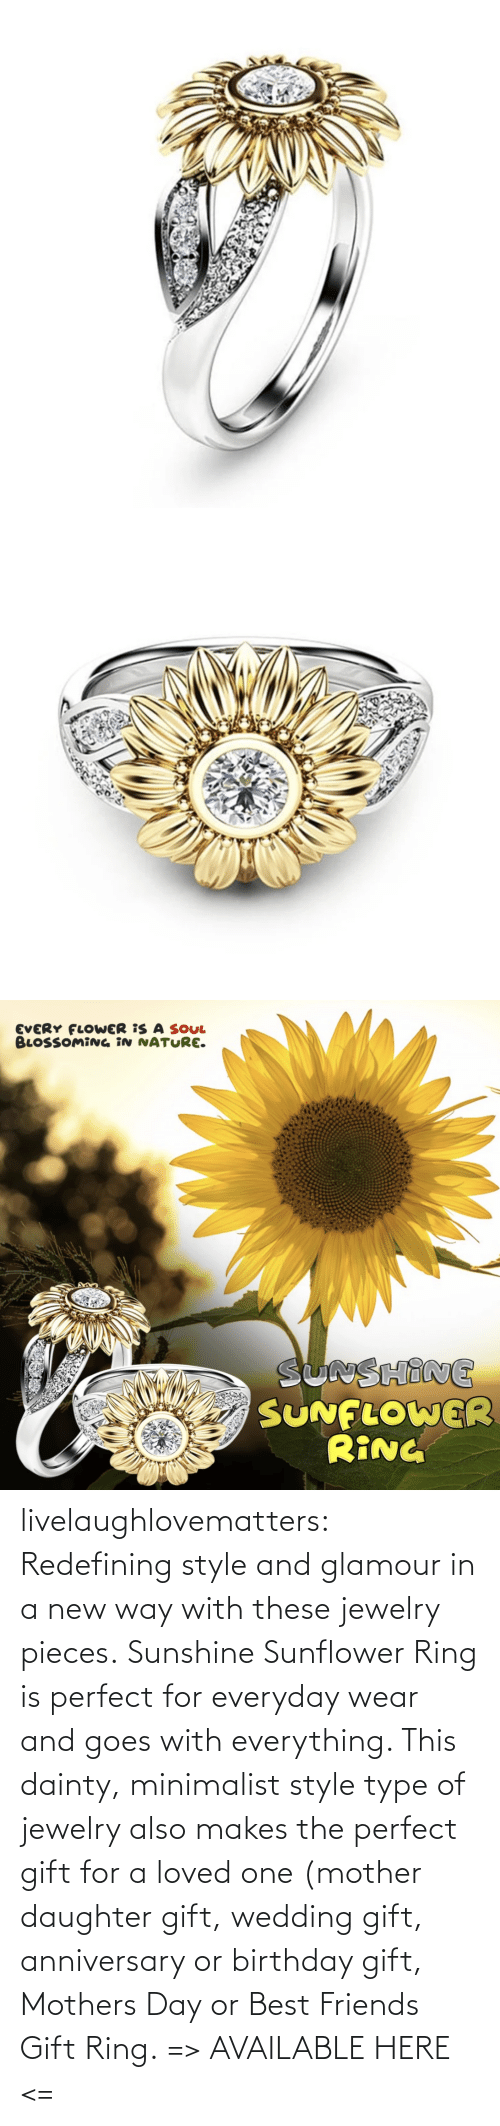 Wedding: livelaughlovematters: Redefining style and glamour in a new way with these jewelry pieces. Sunshine Sunflower Ring is perfect for everyday wear and goes with everything. This dainty, minimalist style type of jewelry also makes the perfect gift for a loved one (mother daughter gift, wedding gift, anniversary or birthday gift, Mothers Day or Best Friends Gift Ring. => AVAILABLE HERE <=